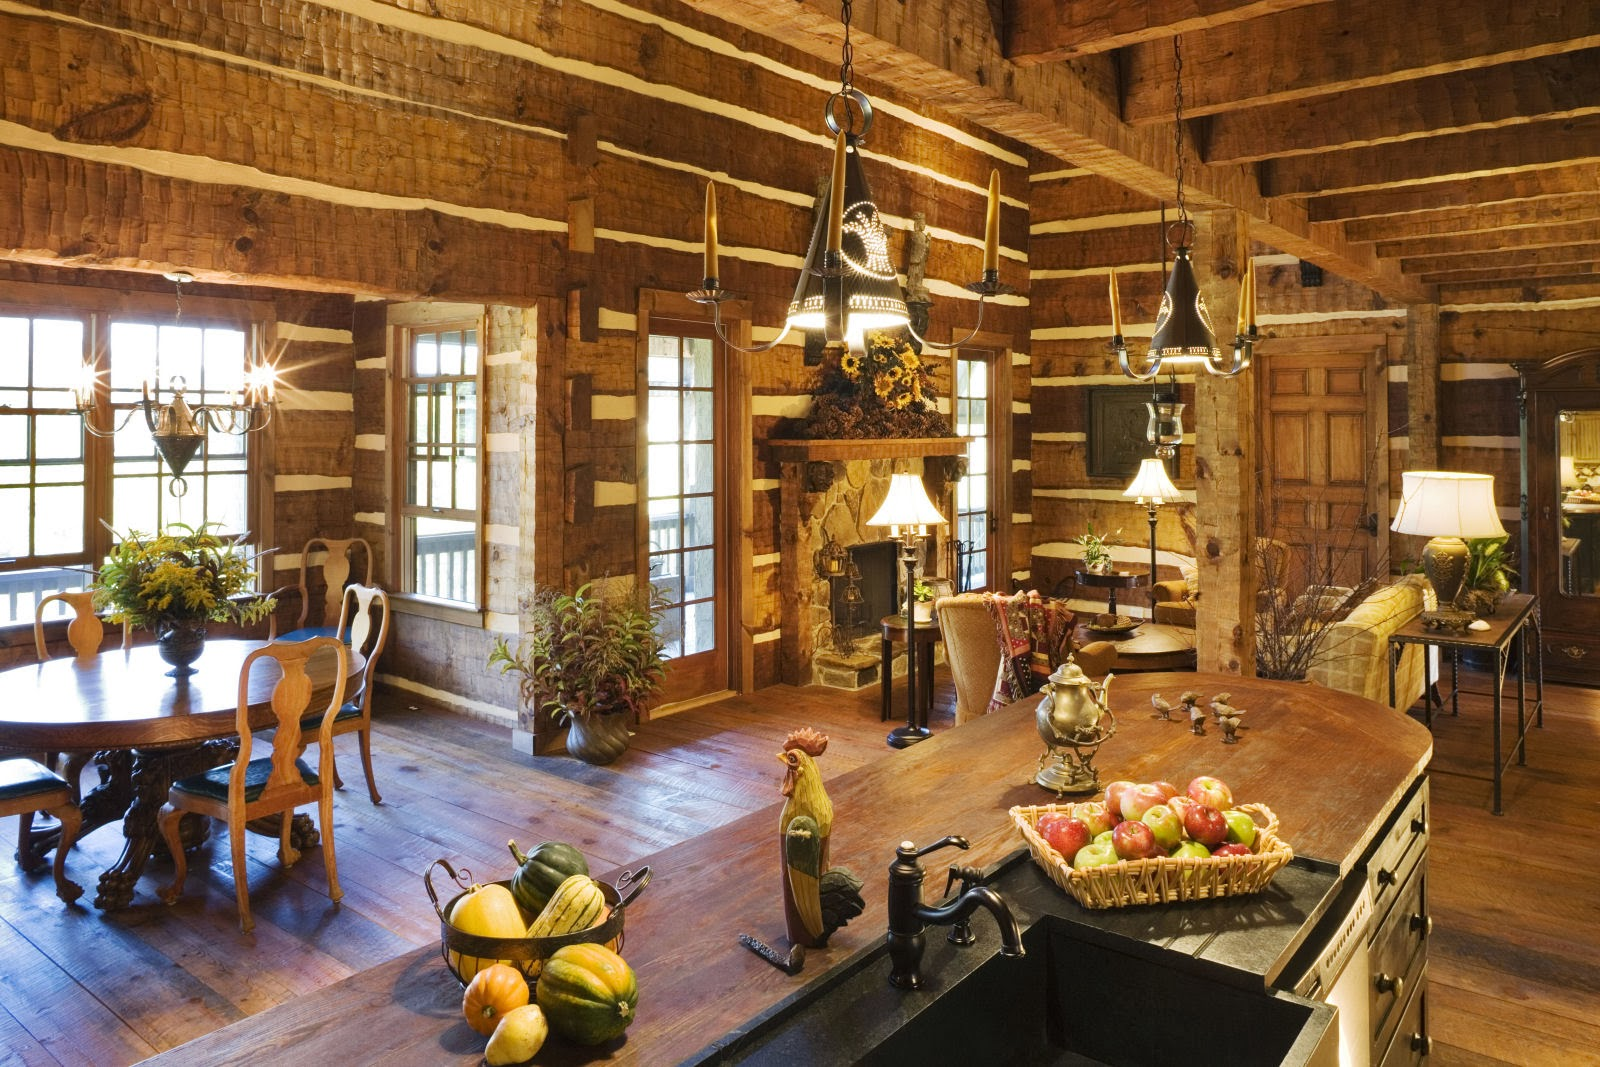 Morning musings my log cabin dream - Cabin floor concept ...